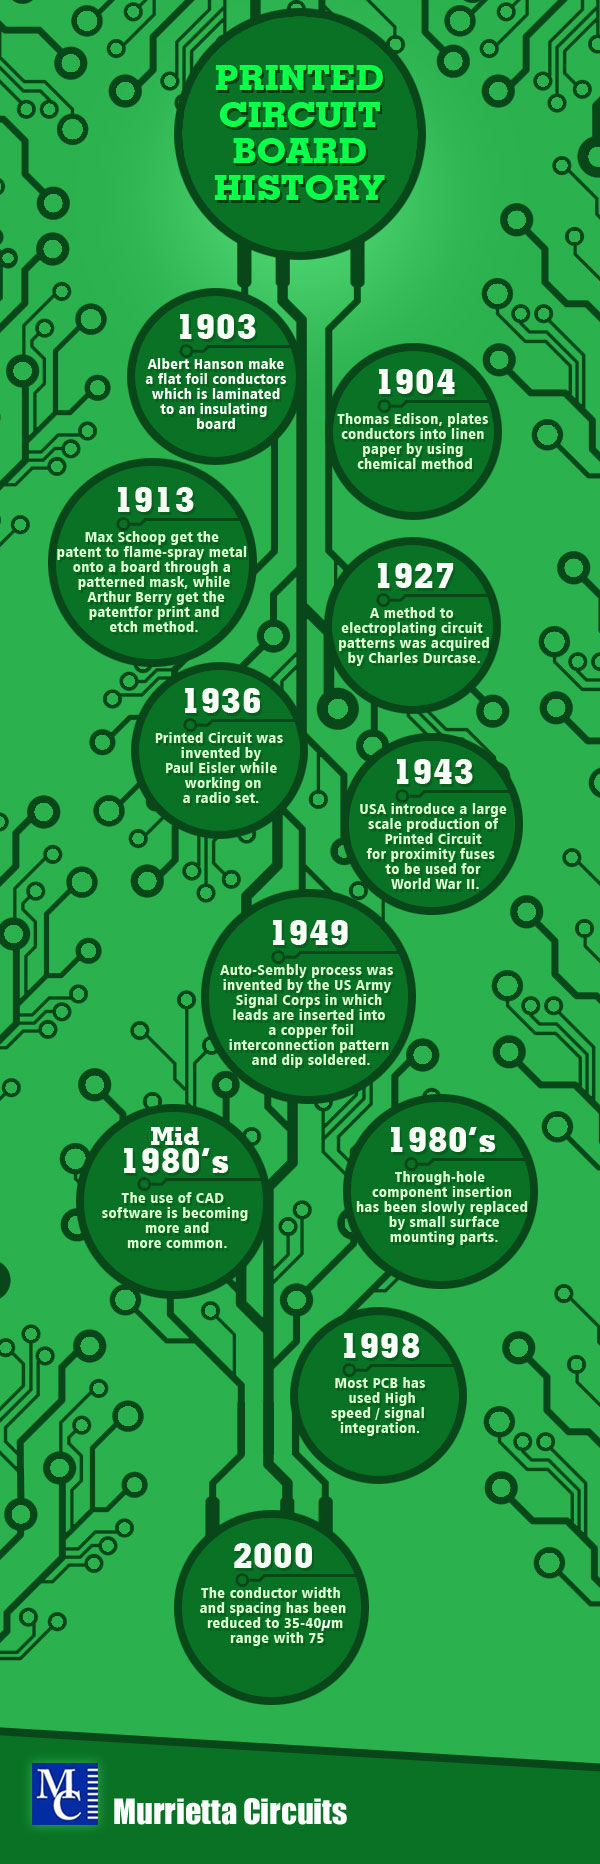 History of the Circuit Board